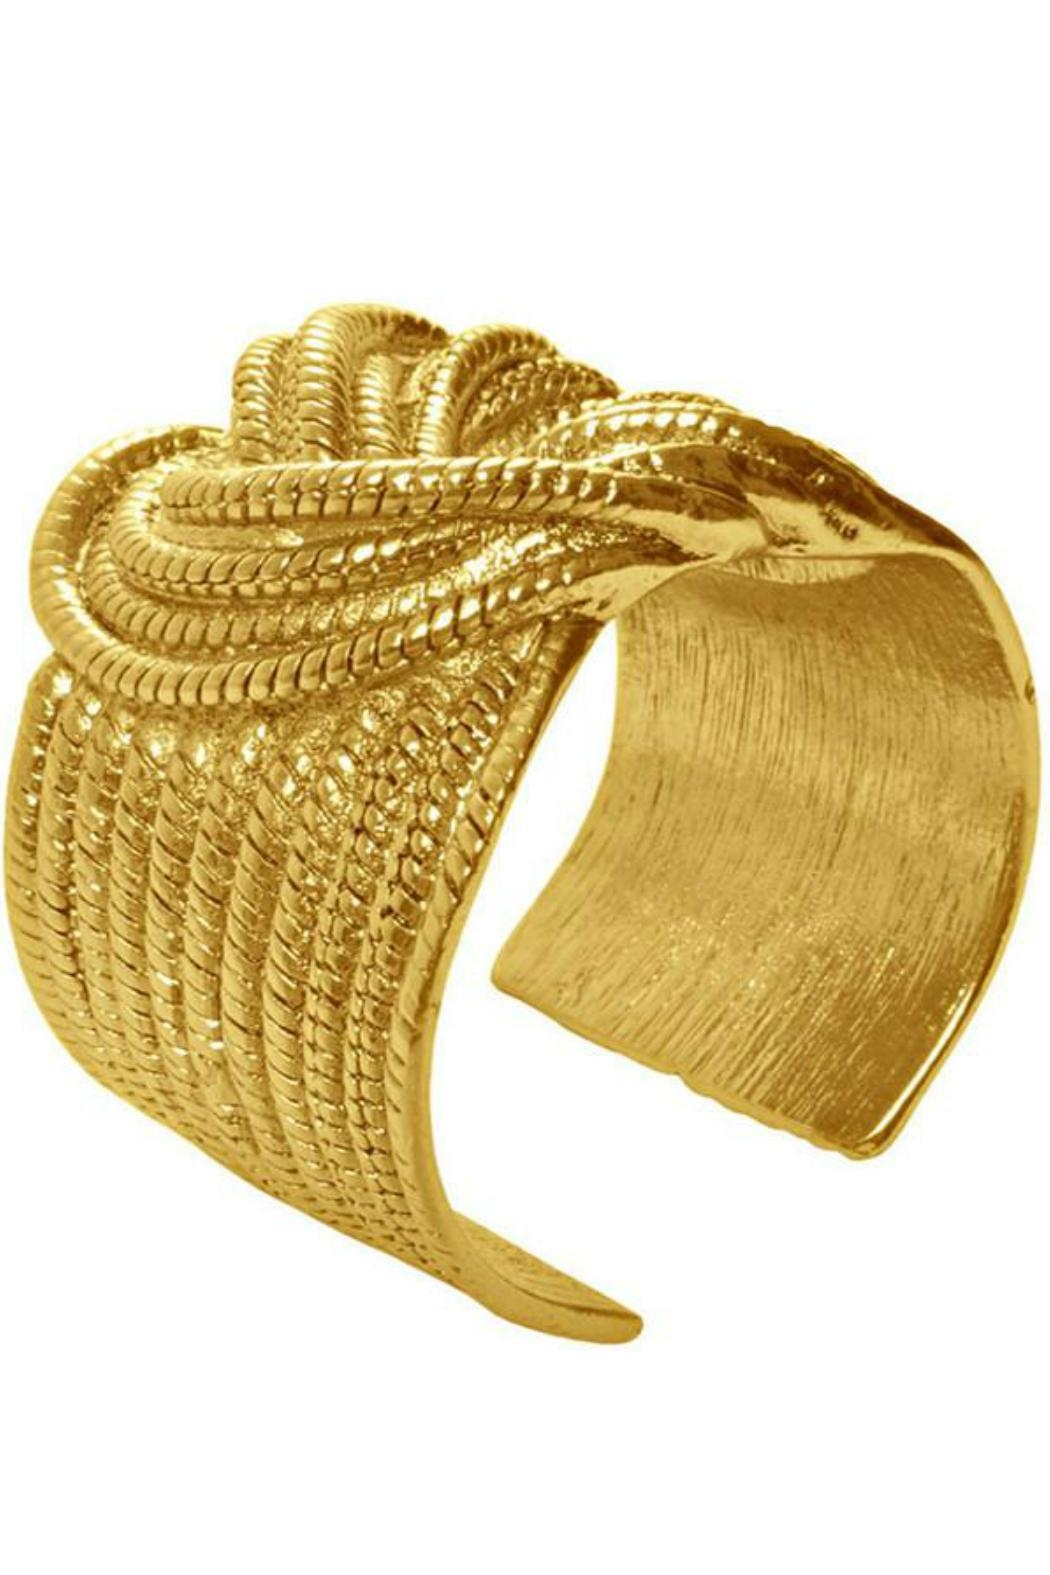 Karine Sultan Paris Boating Knot Cuff - Main Image